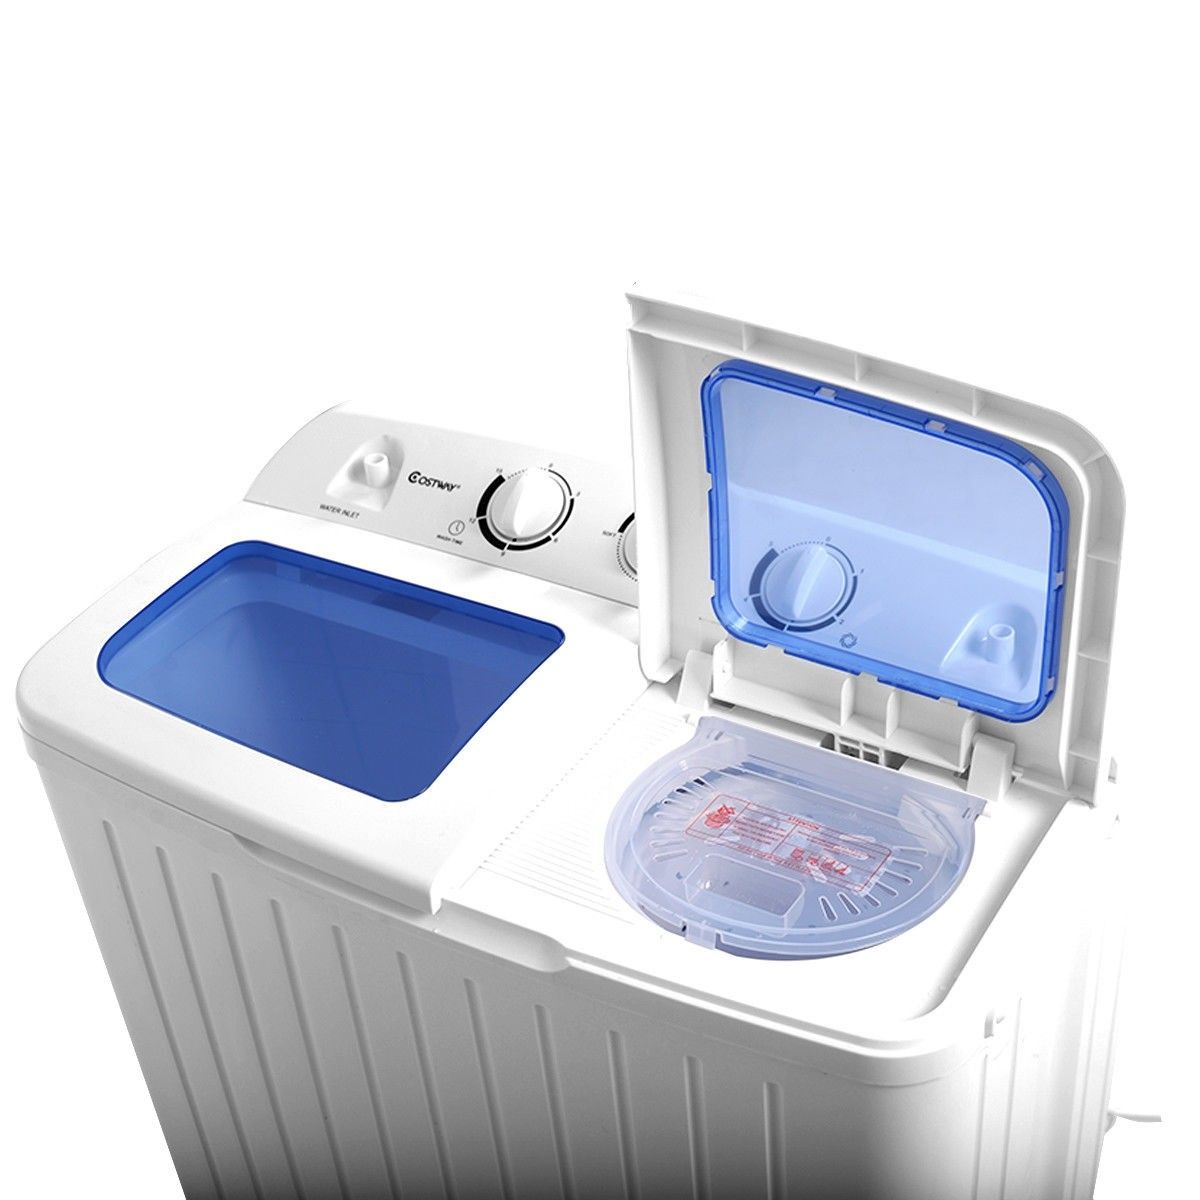 11 Lbs Compact Twin Tub Washing Machine Washer Spinner Small